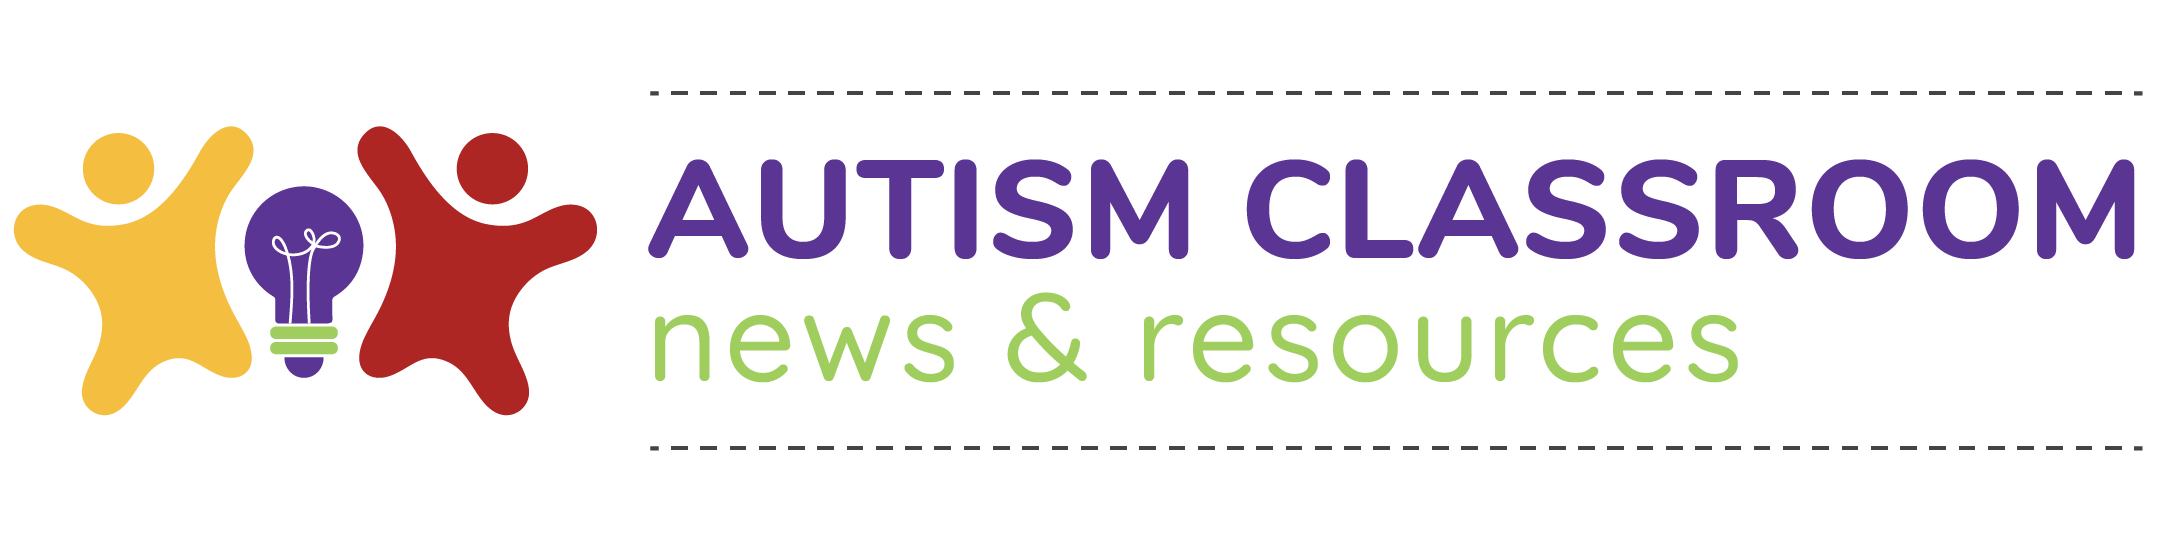 Autism Classroom News and Resources